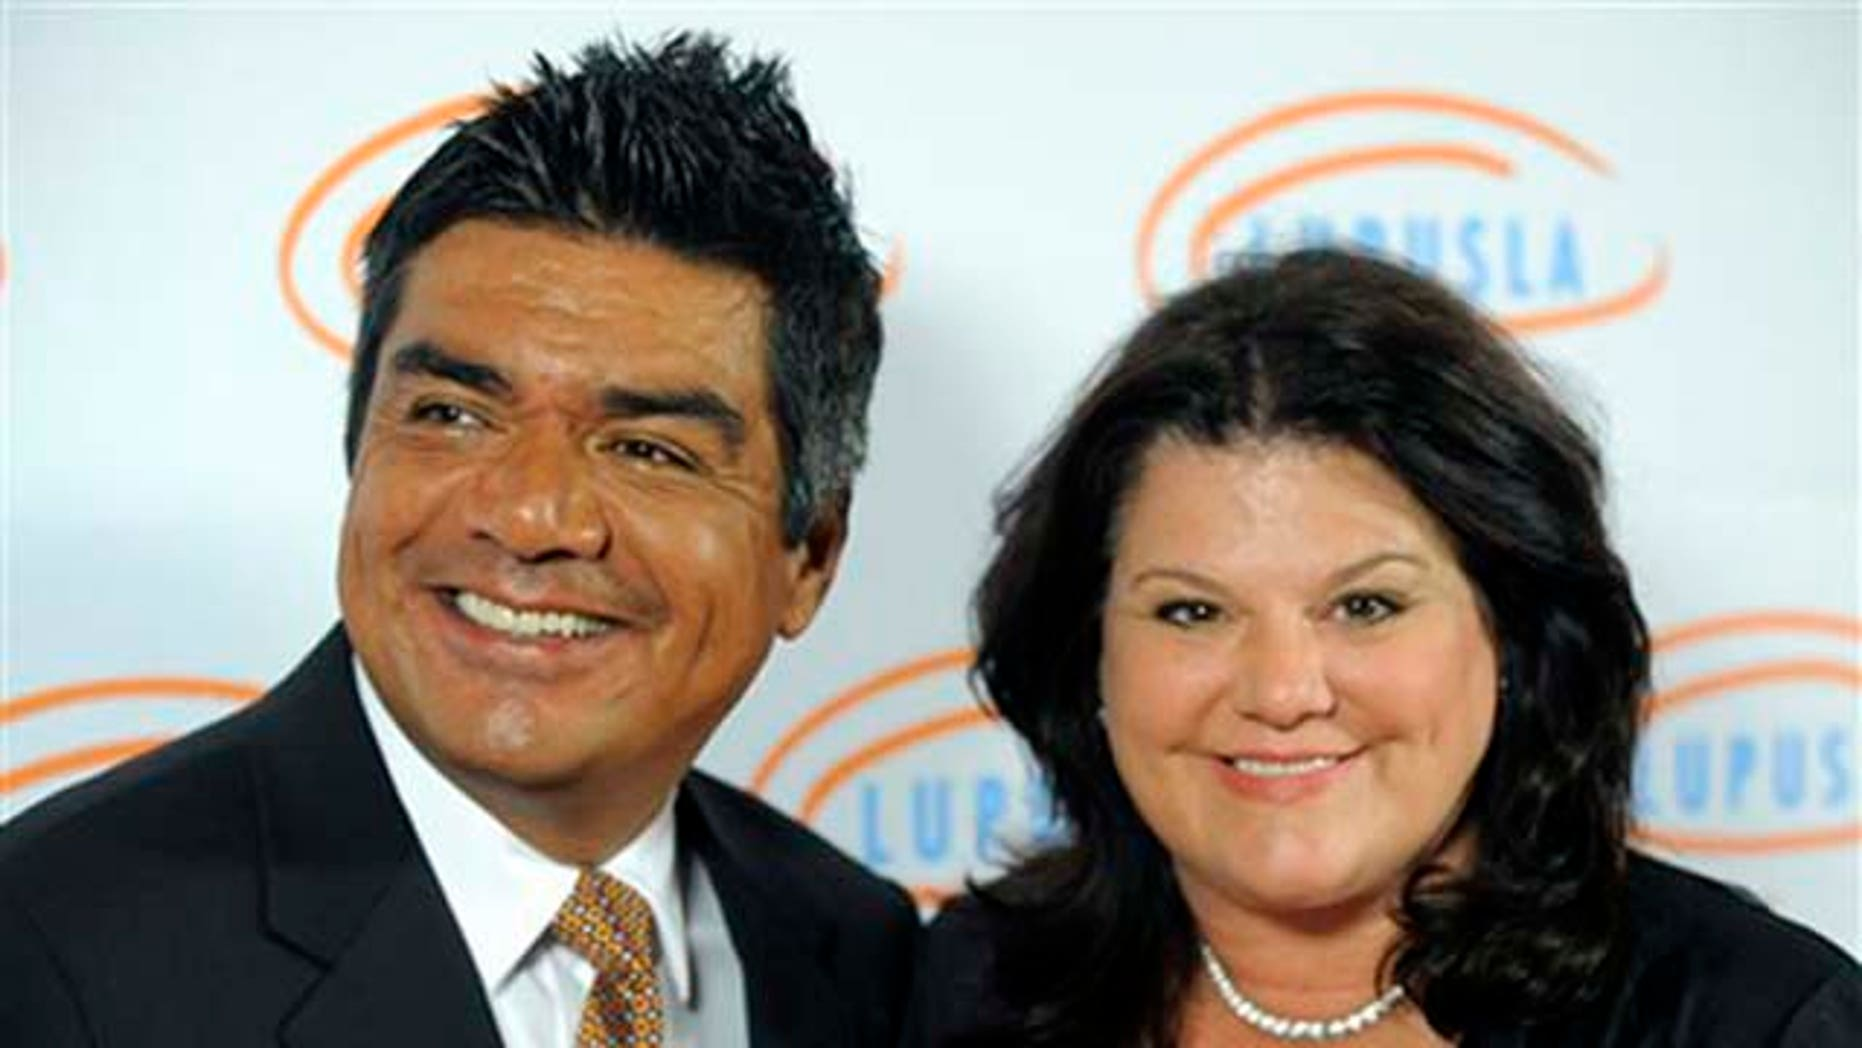 FILE - In this May 6, 2010 file photo, TV personality George Lopez and his wife Ann arrive at the 10th Annual Lupus LA Orange Ball in Beverly Hills, Calif. (AP Photo/Chris Pizzello, file)